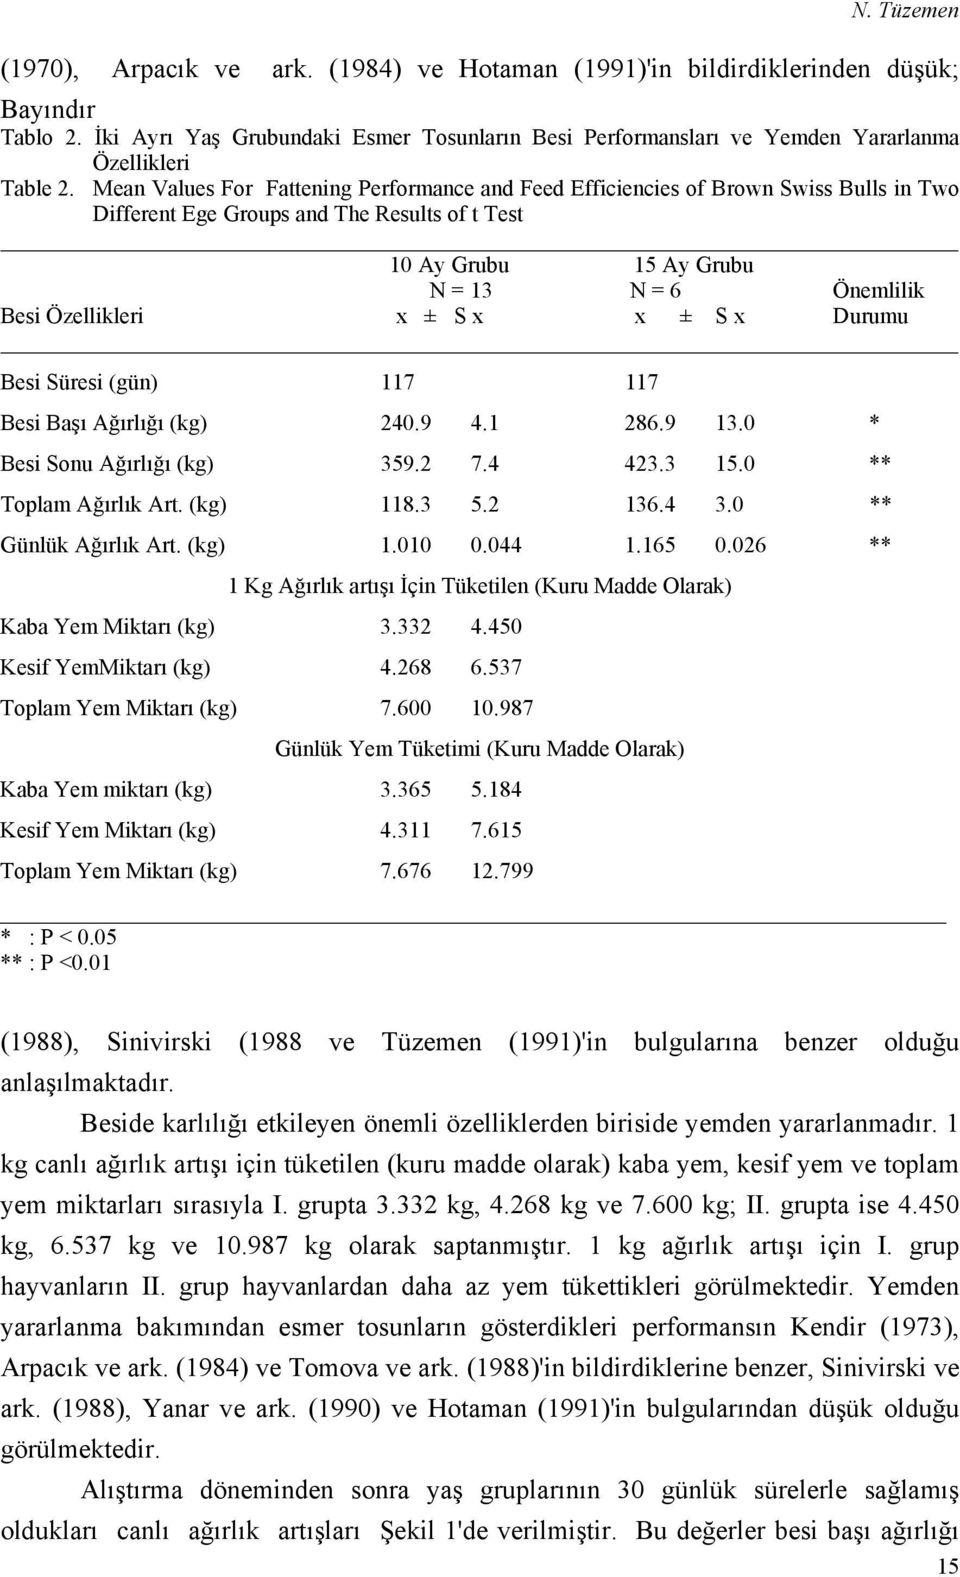 Mean Values For Fattening Performance and Feed Efficiencies of Brown Swiss Bulls in Two Different Ege Groups and The Results of t Test 10 Ay Grubu 15 Ay Grubu N = 13 N = 6 Önemlilik Besi Özellikleri